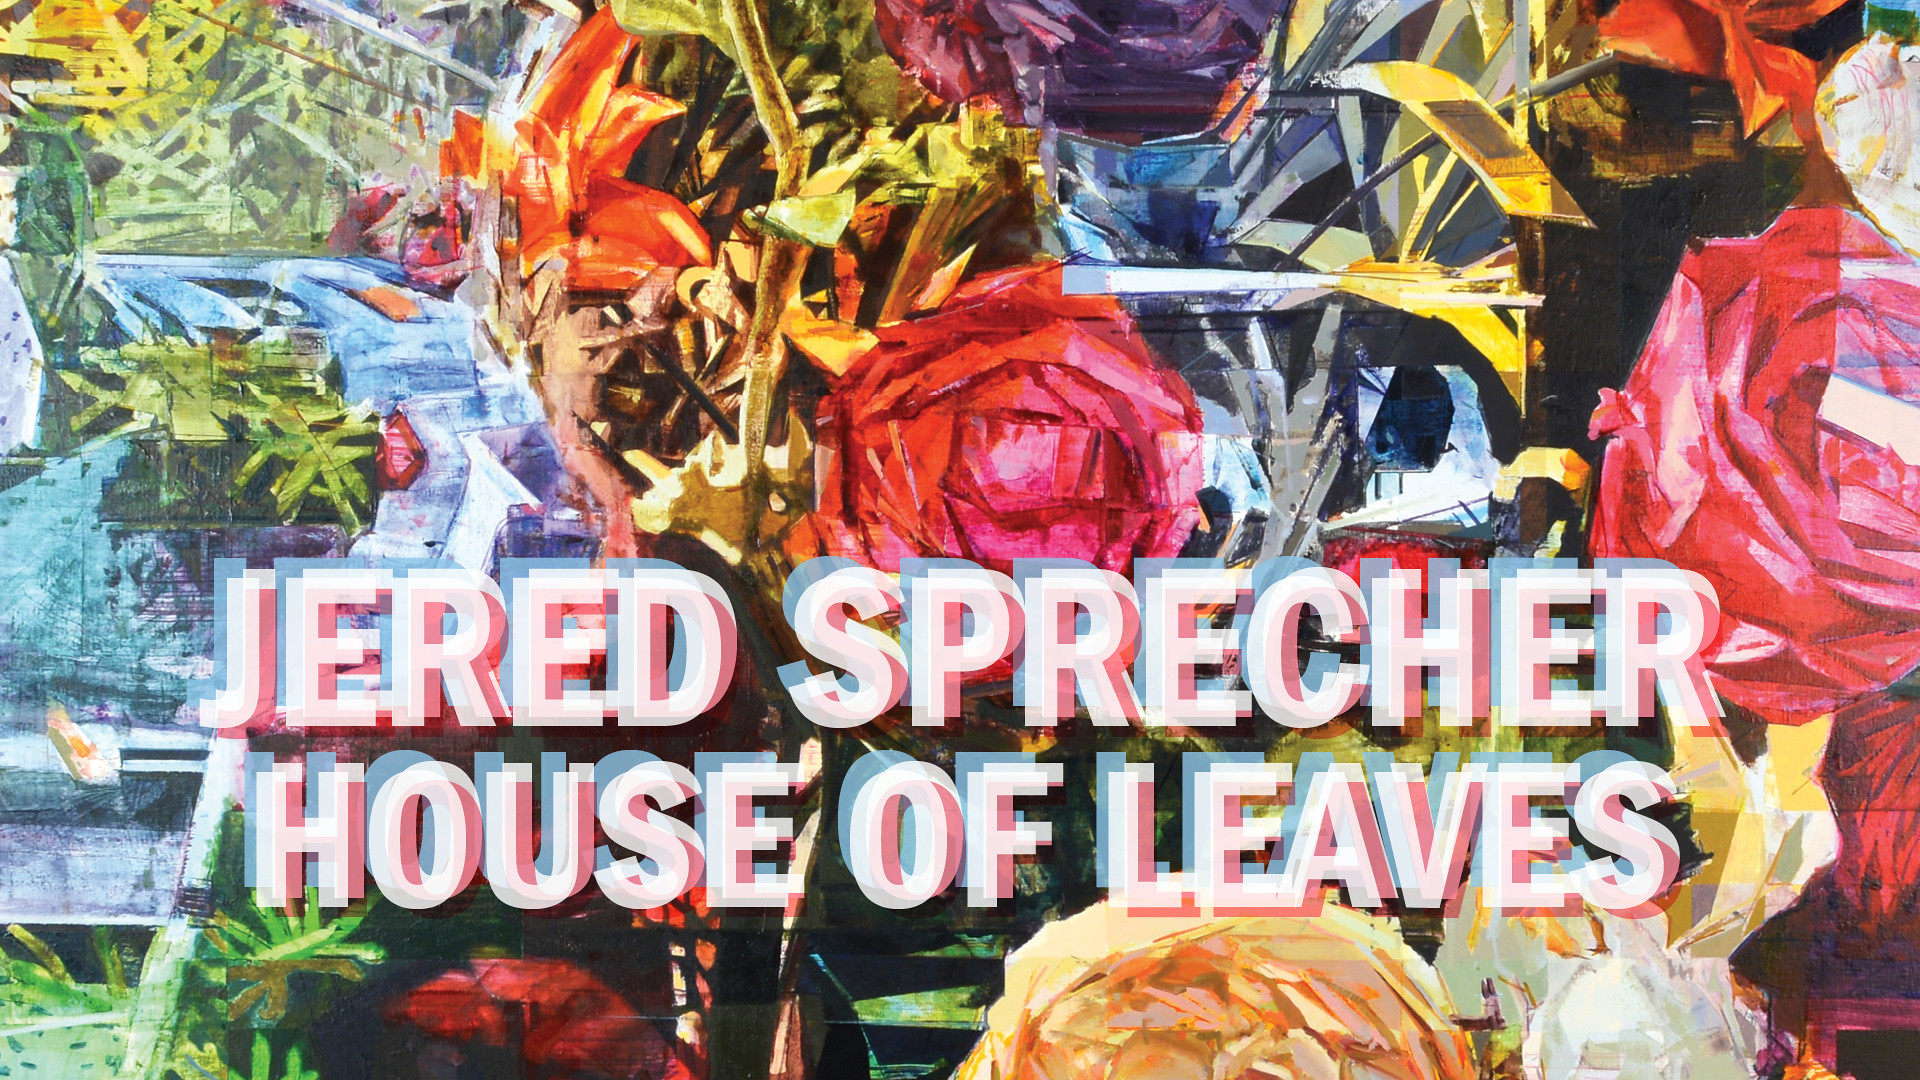 Jered Sprecher House of Leaves